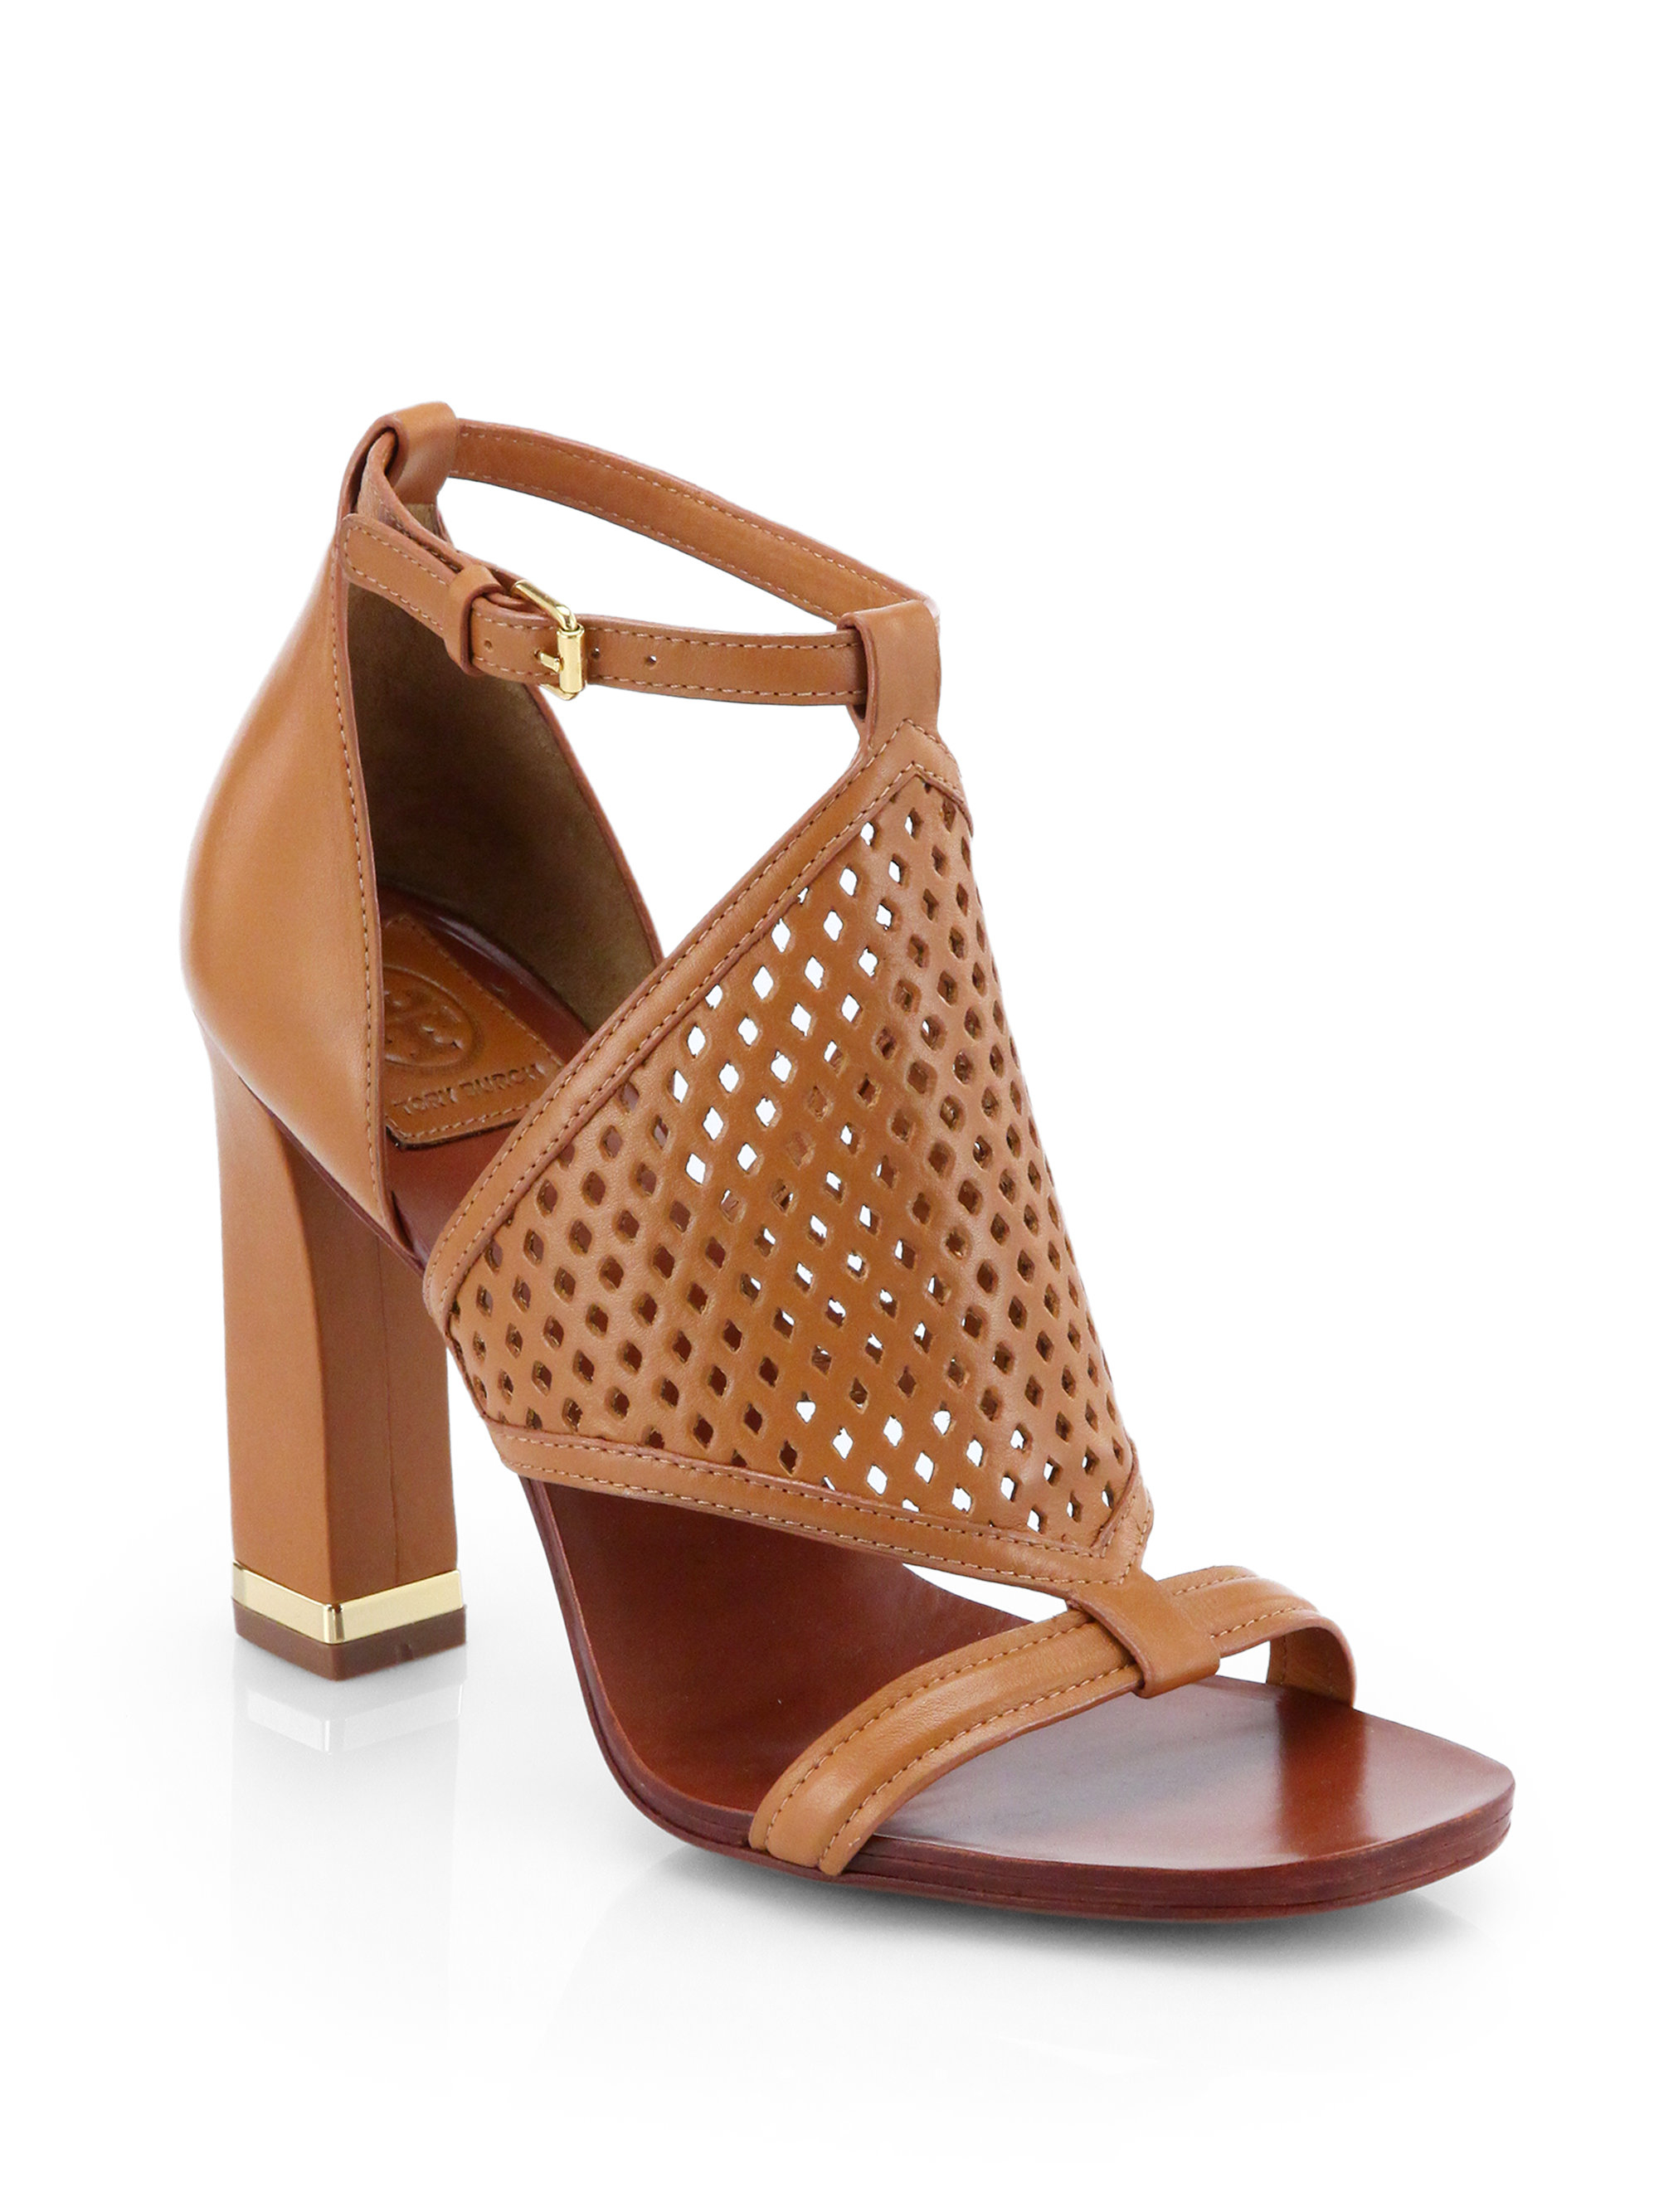 Lyst Tory Burch Doris Perforated Leather Sandals In Brown